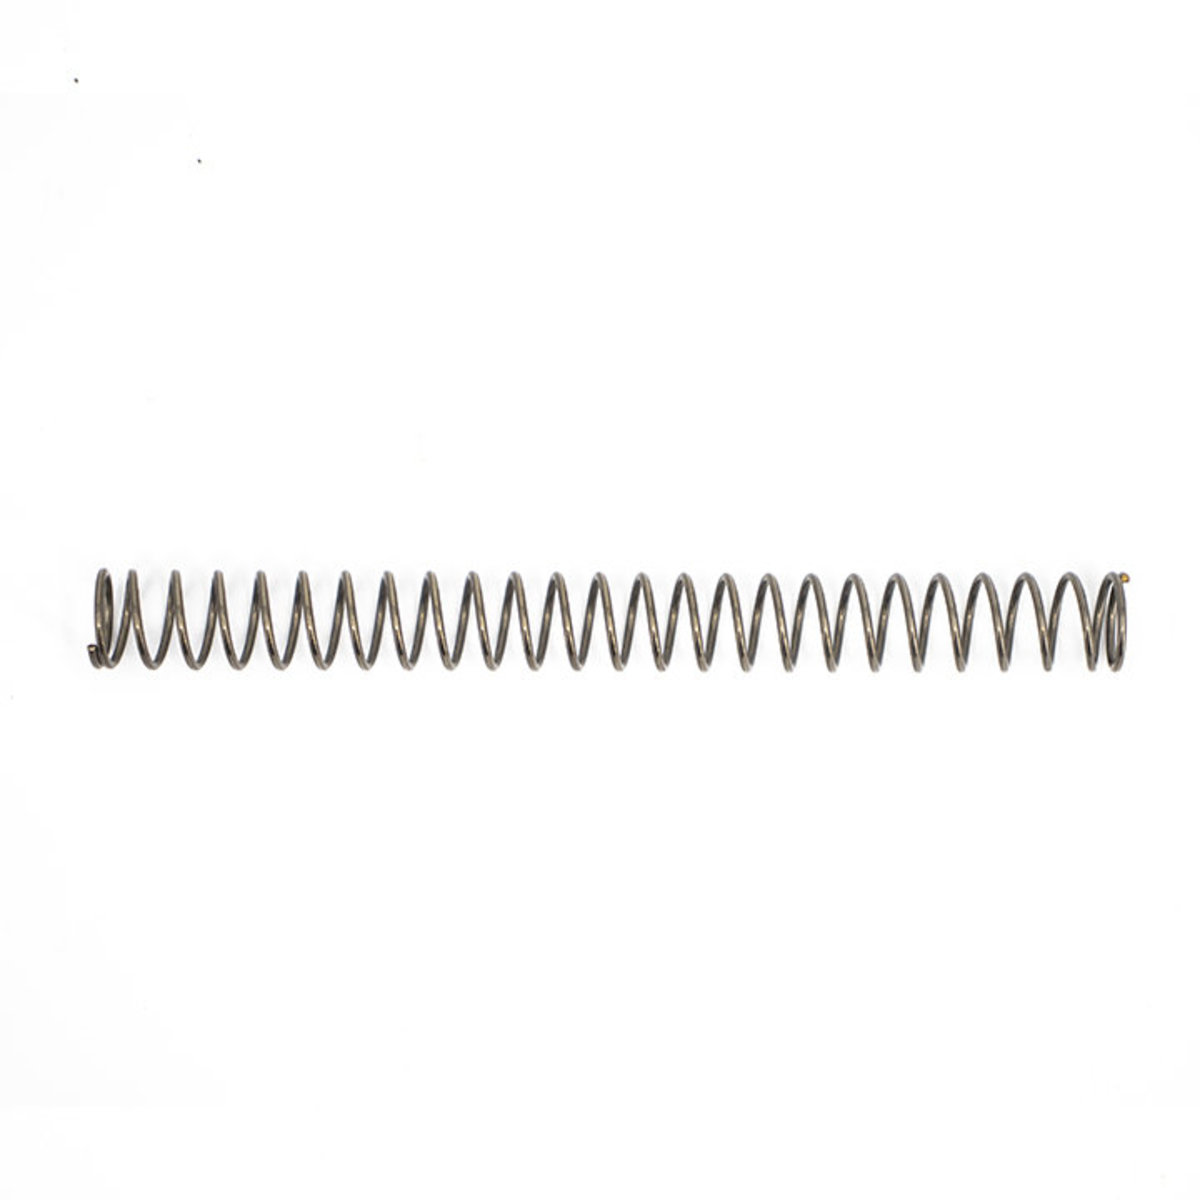 View larger image of Rifle Accessory - Valken Battle Machine Main Spring M140